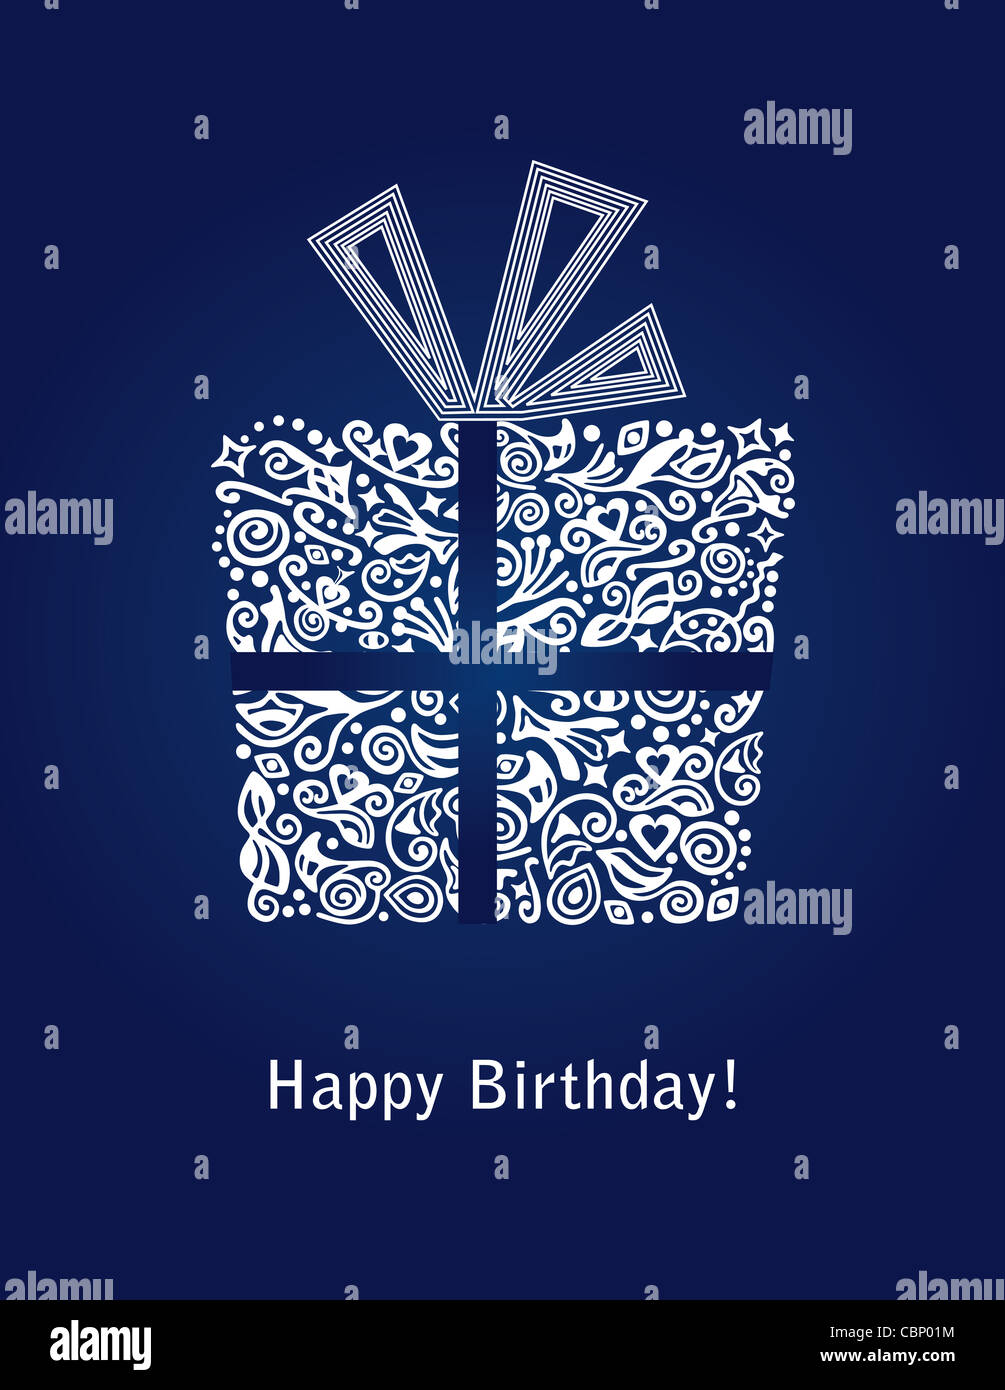 Happy Birthday Images For Men.Blue Mens Happy Birthday Card With Detailed Gift Box And